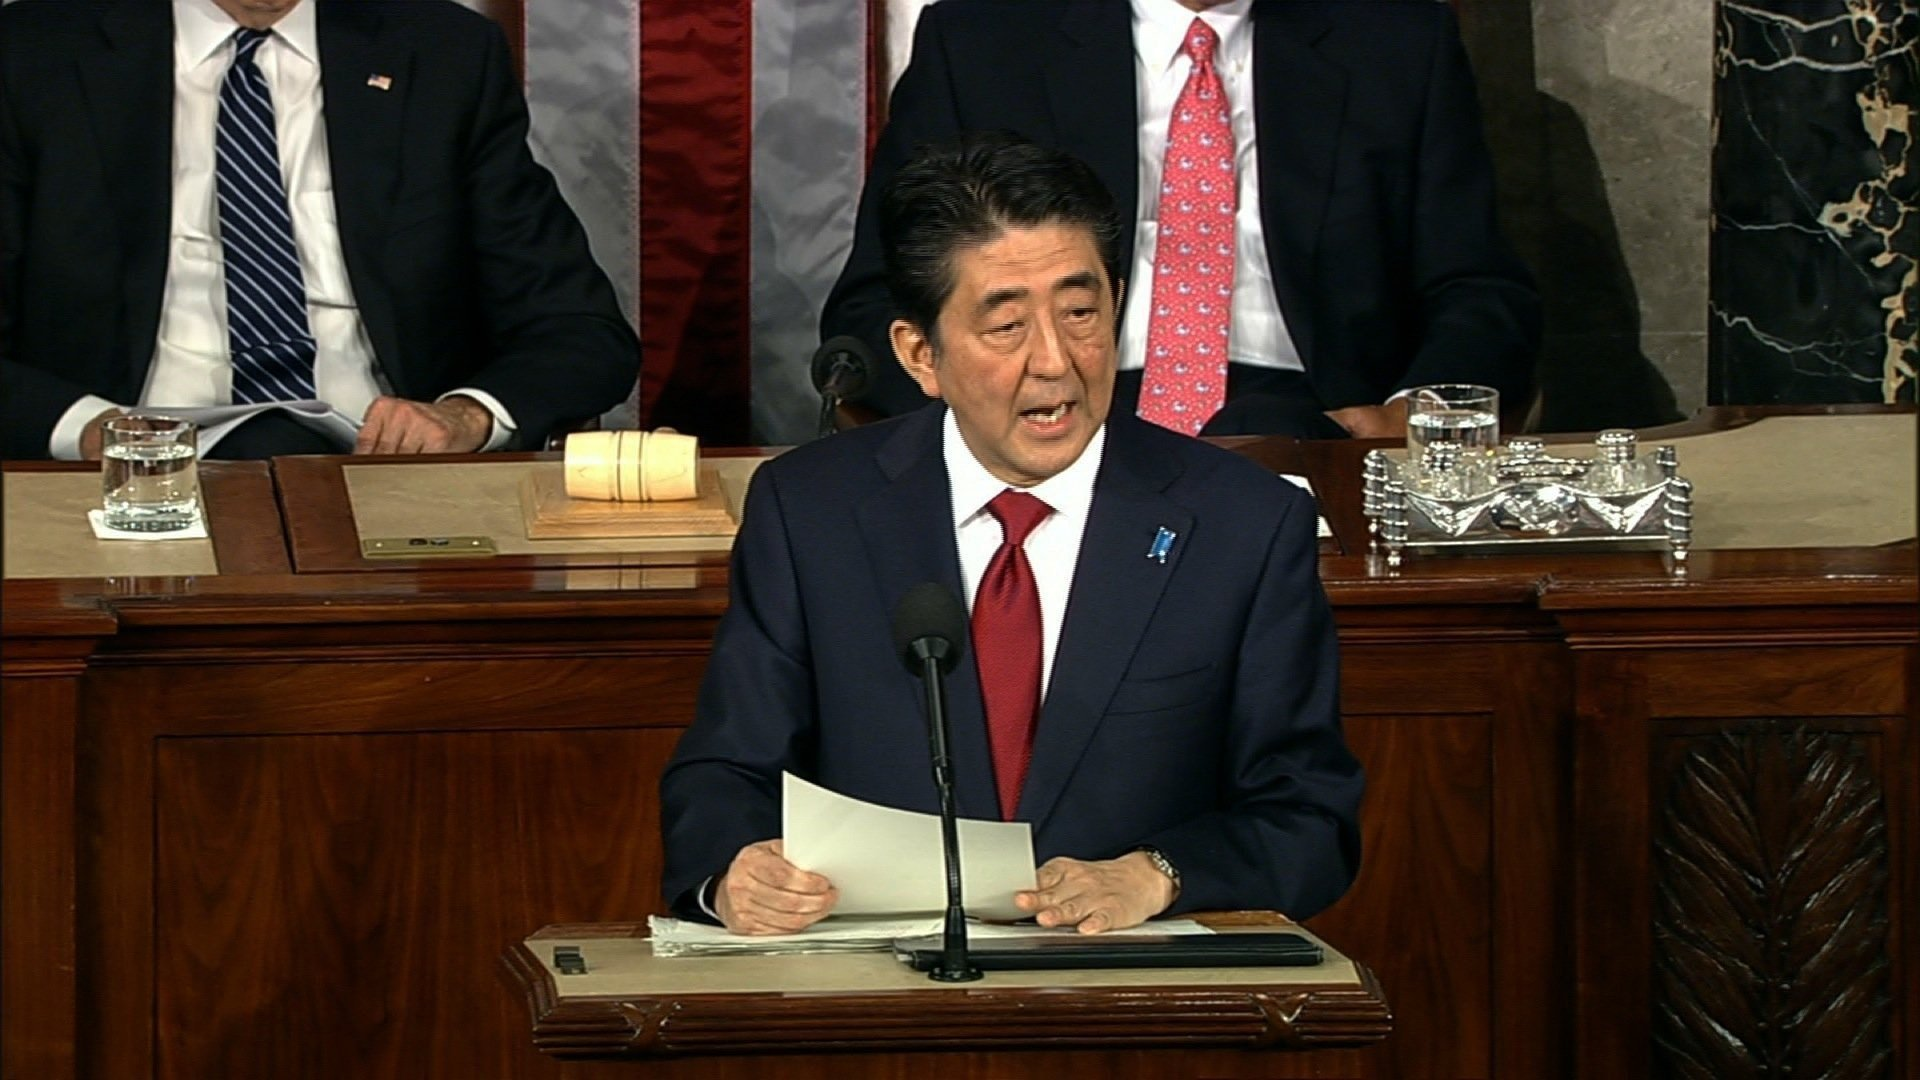 Shinzo Abe confident of 'trust relationship' with Donald Trump